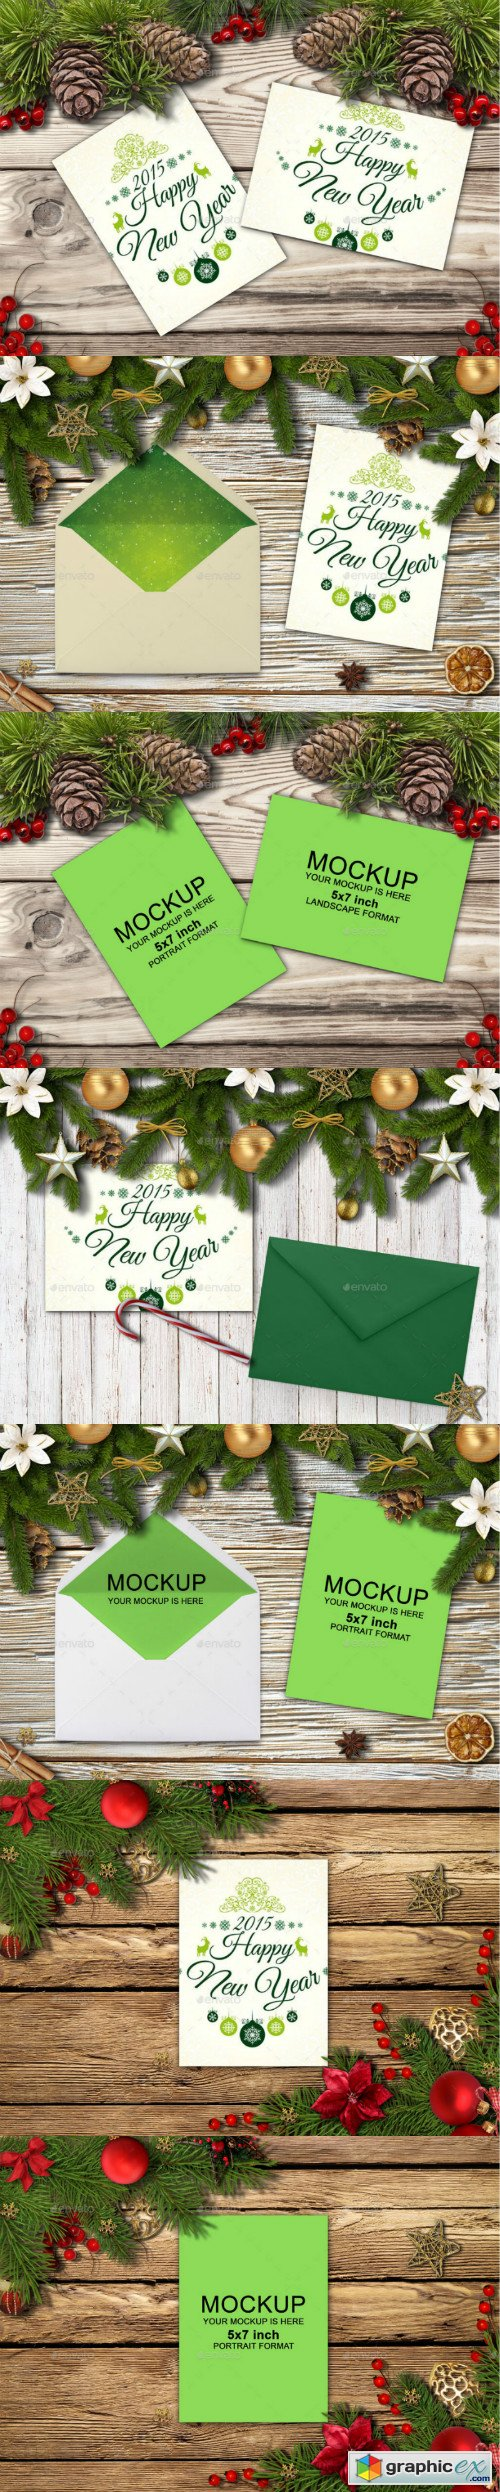 Happy New Year Cards And Invites Mockup Maker